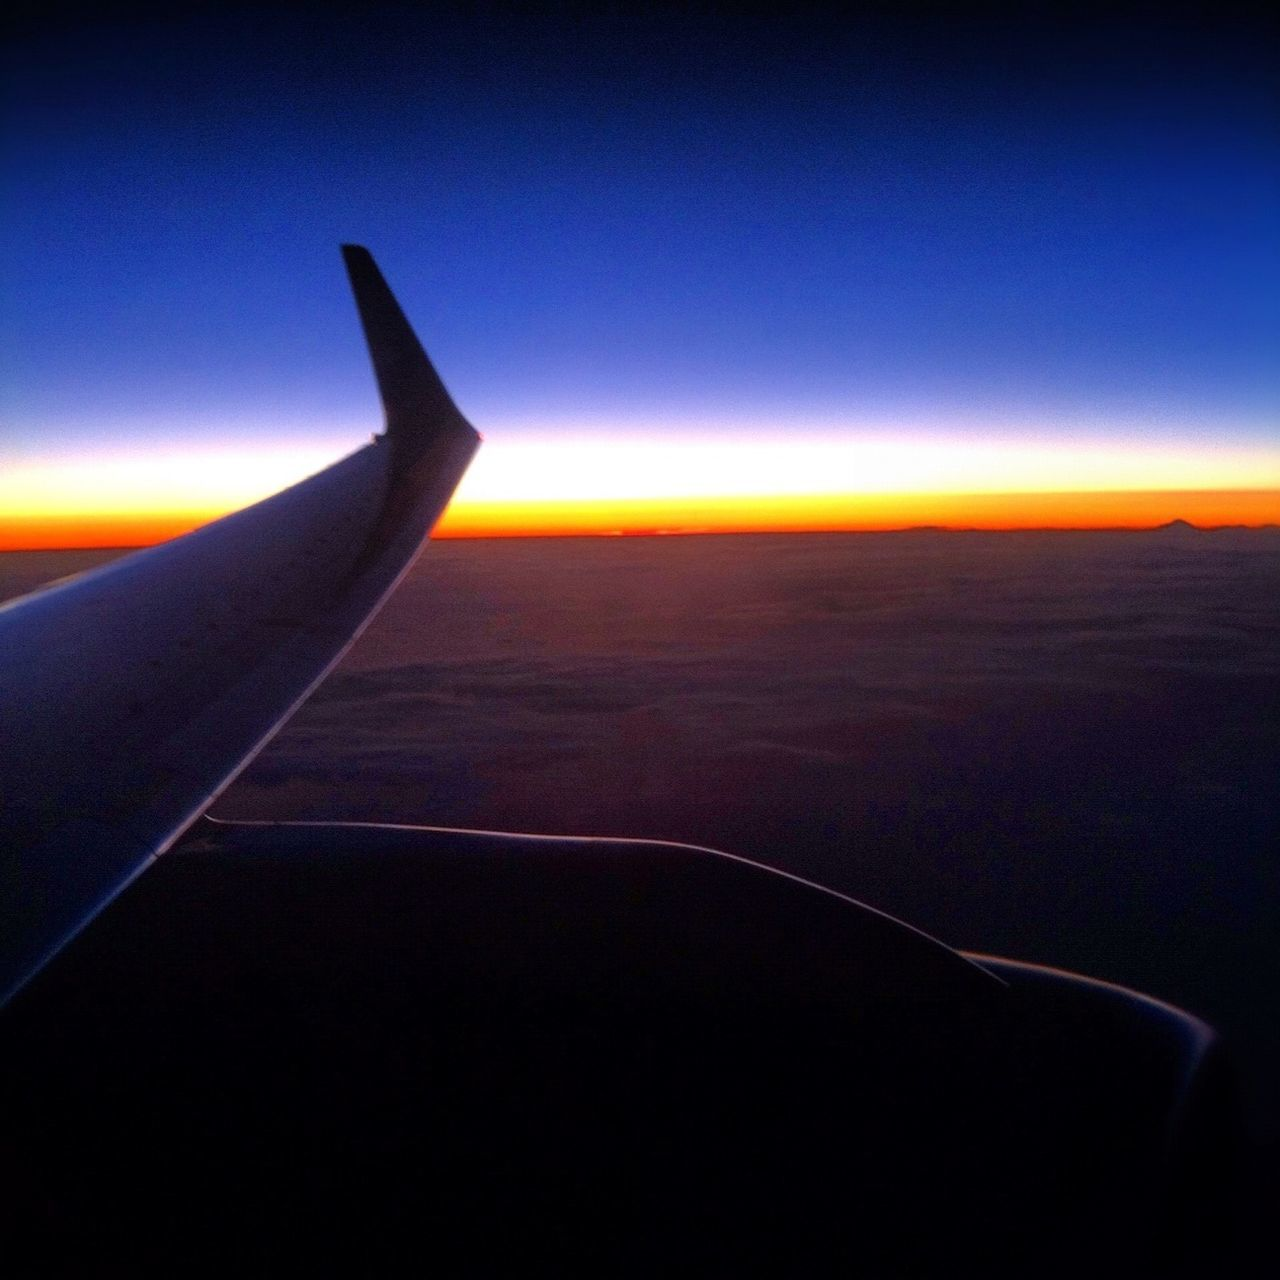 CROPPED IMAGE OF AIRPLANE WING